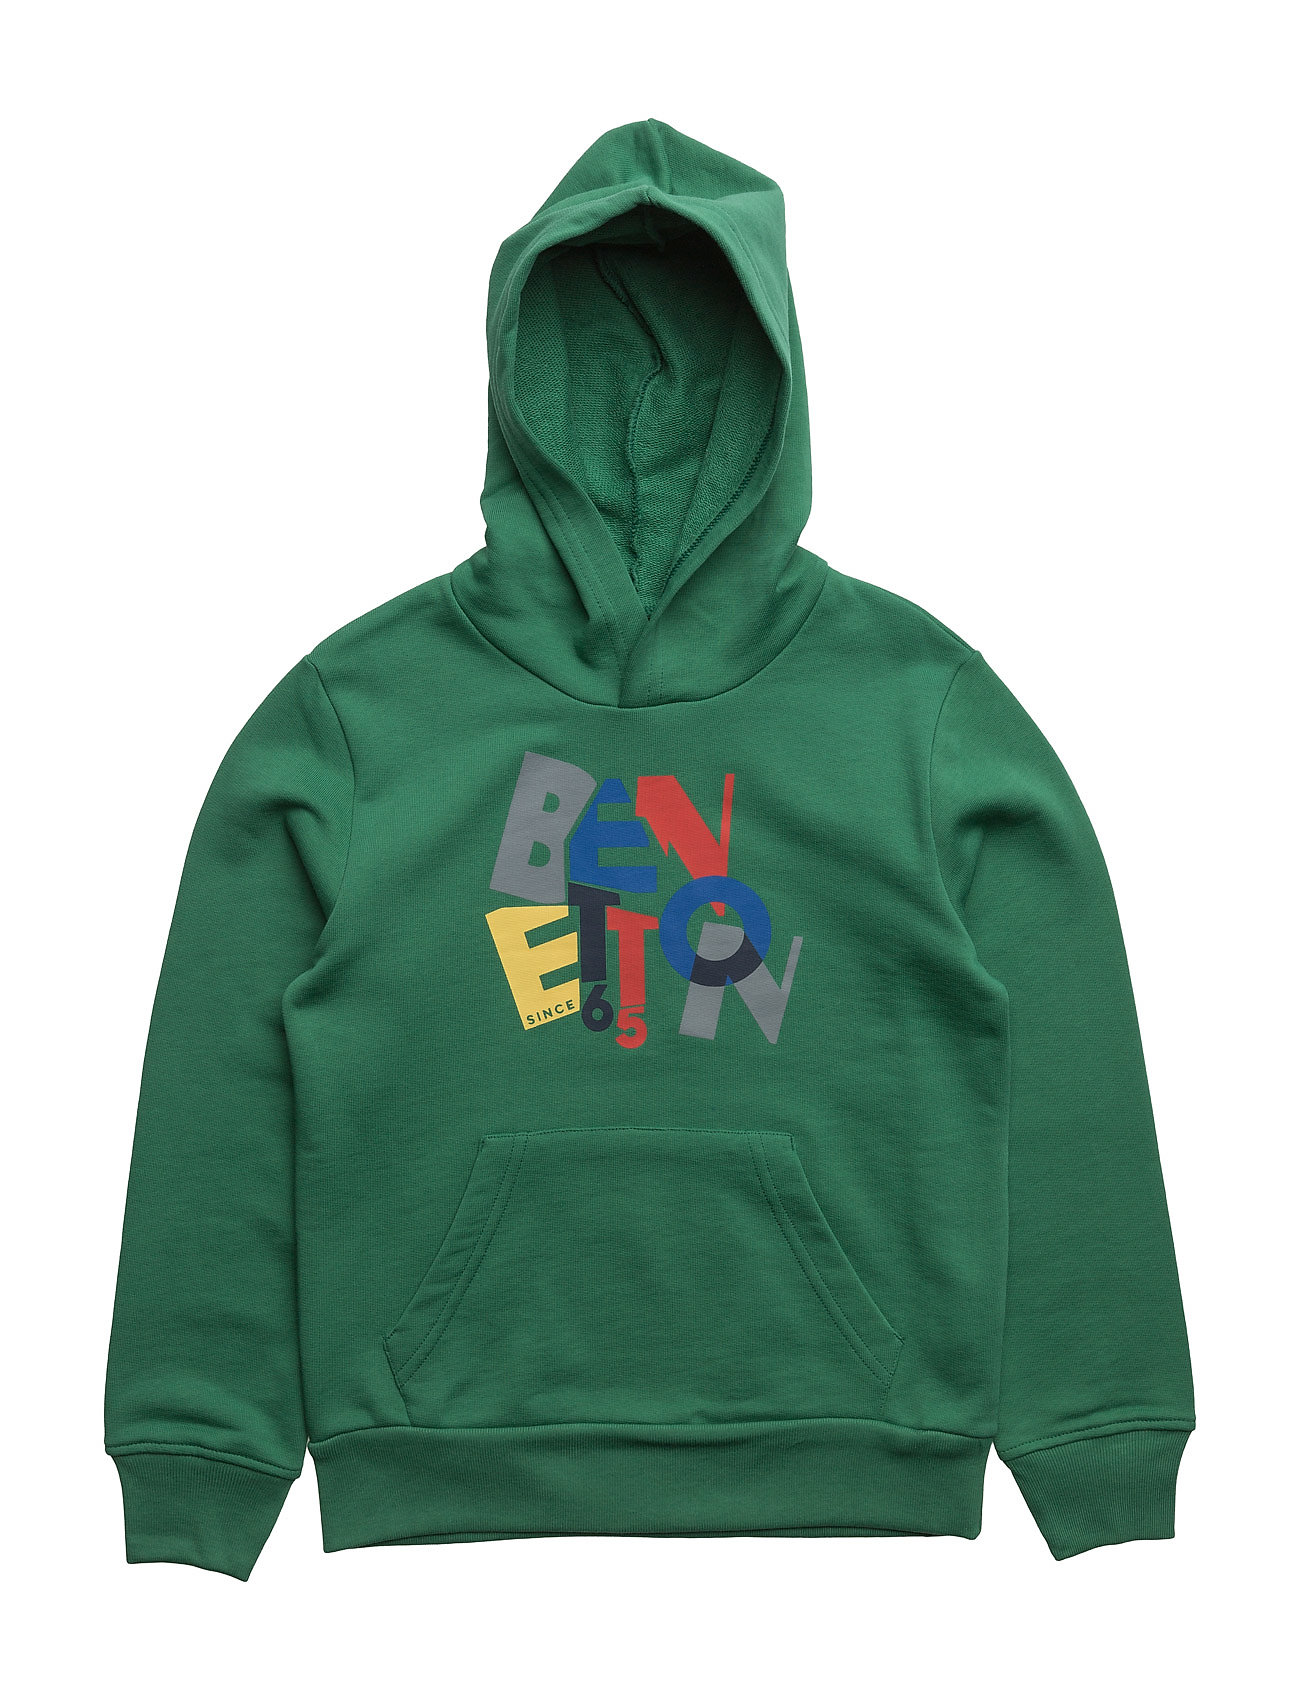 Sweater W/Hood United Colors of Benetton Striktrøjer til Drenge i